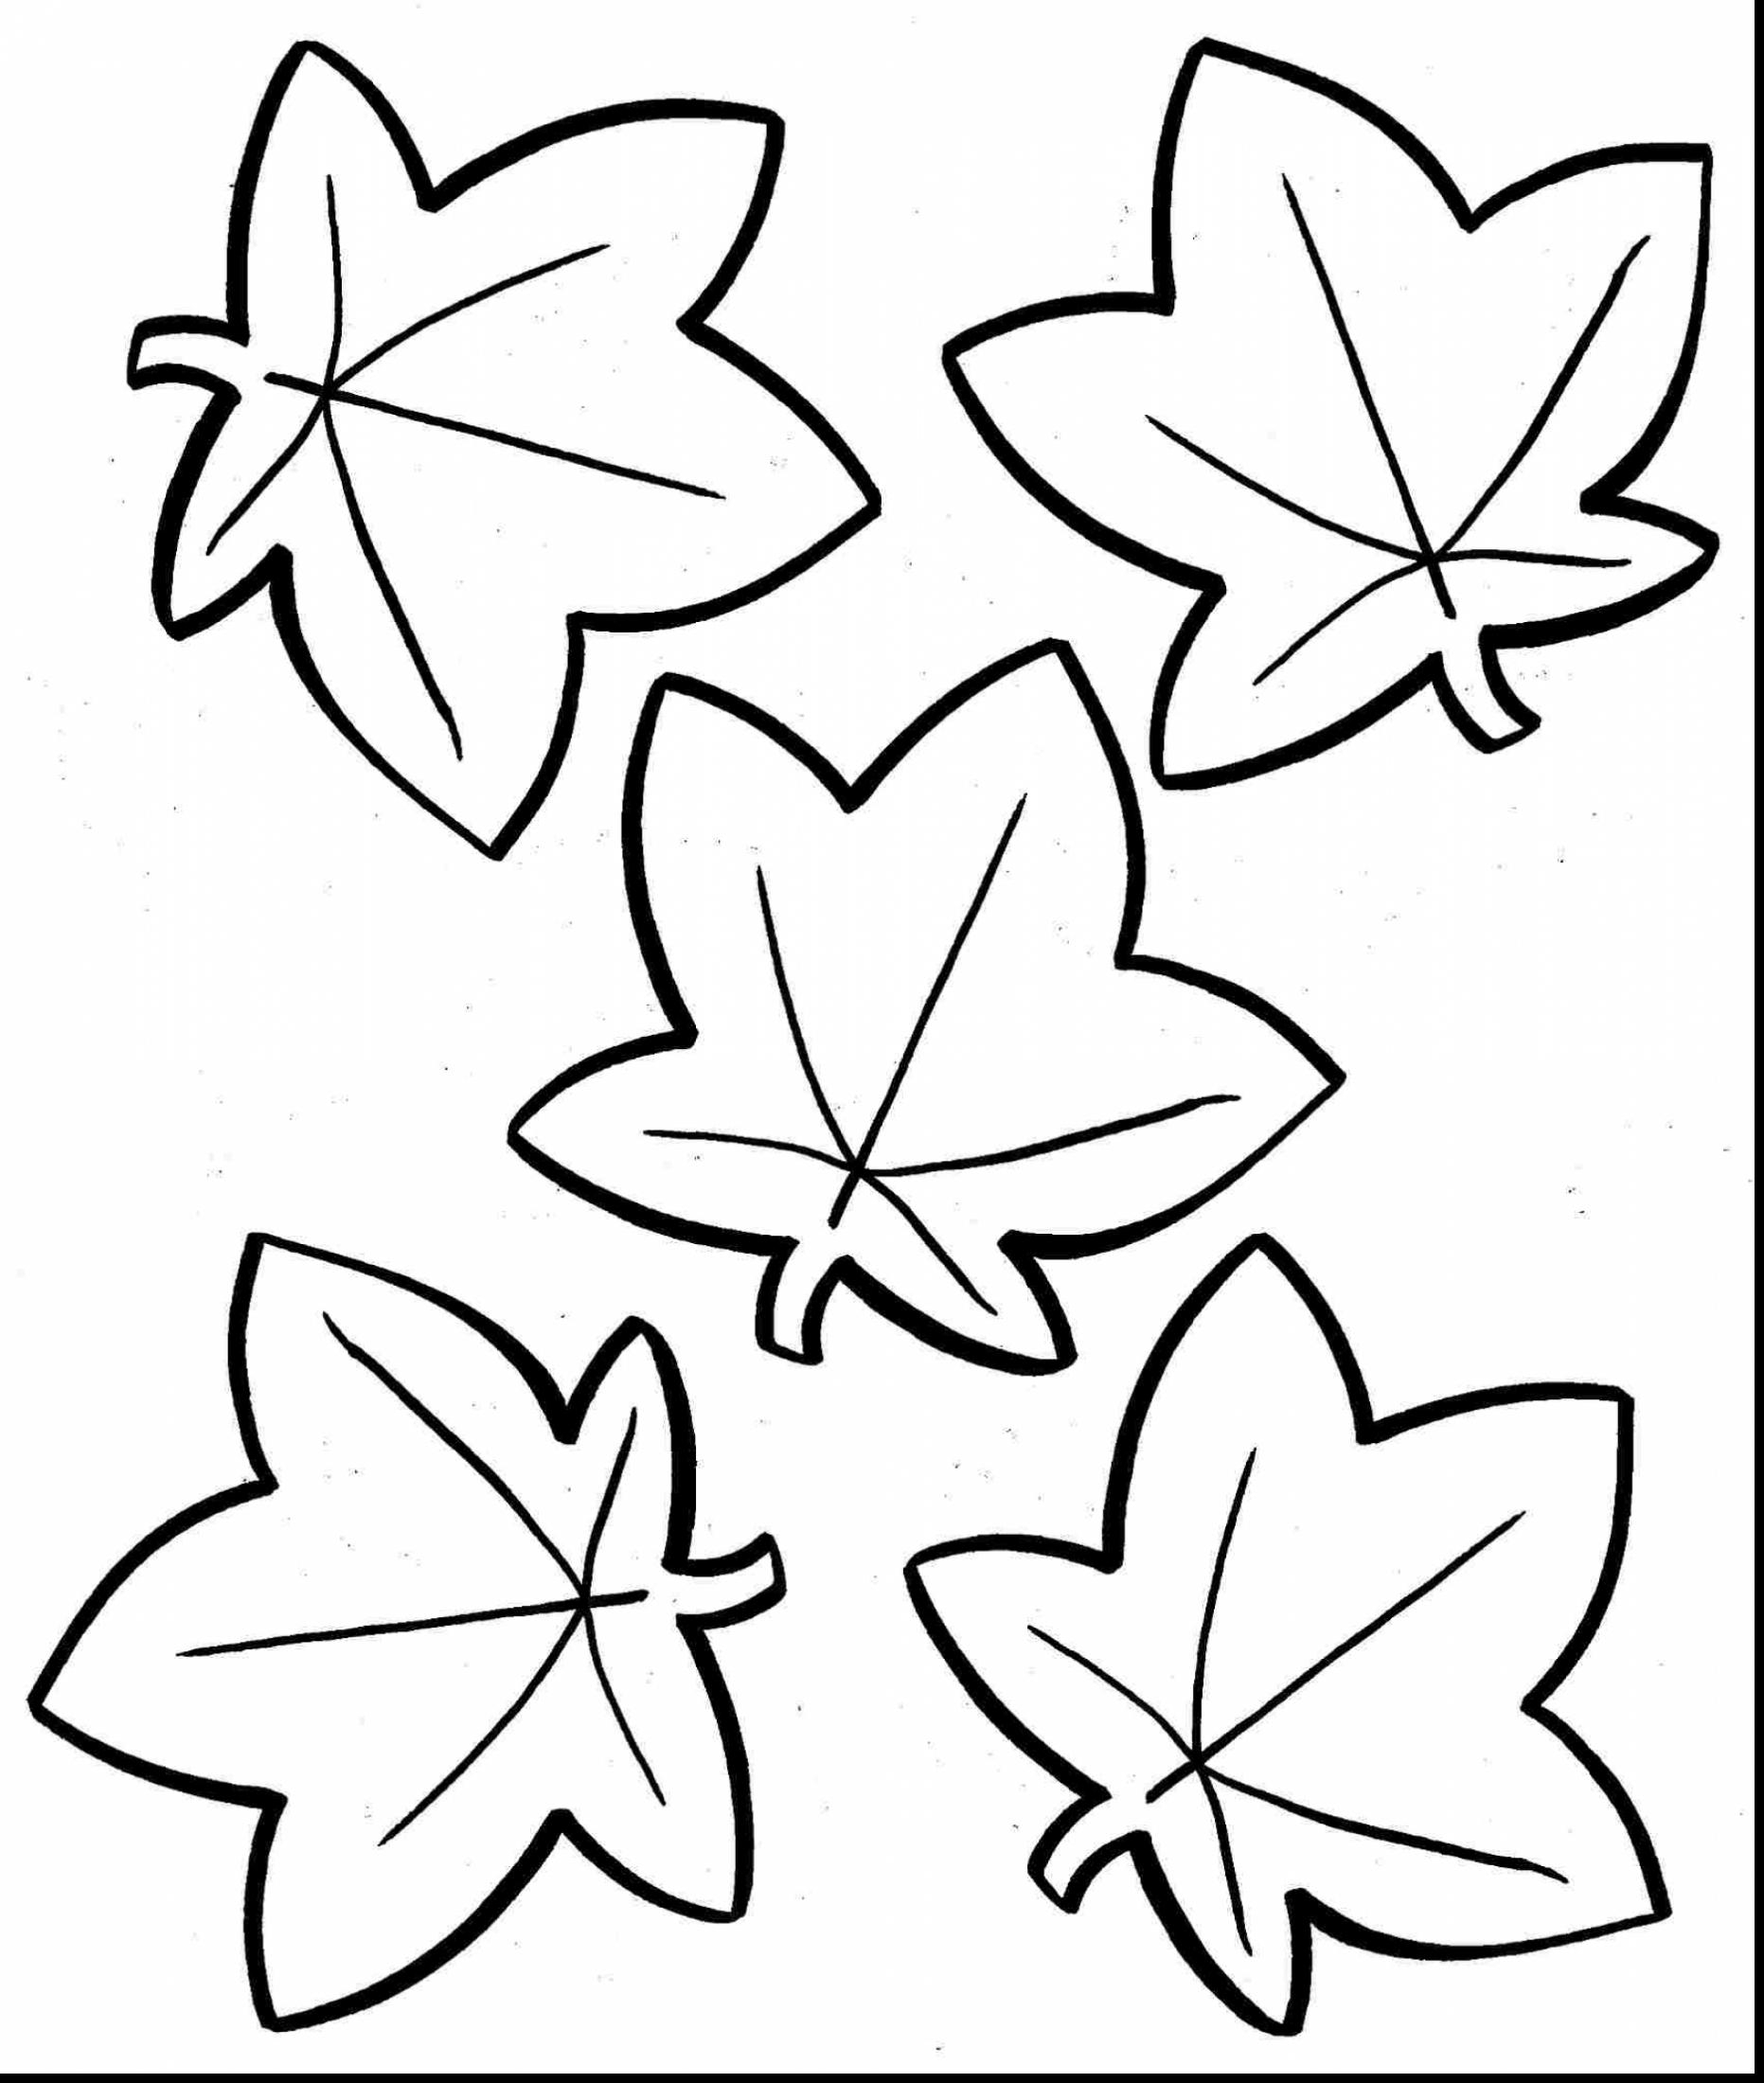 Leaf Coloring Pages for Preschool Gallery Of Back to School Coloring Pages for Kindergarten 1480—2168 Printable